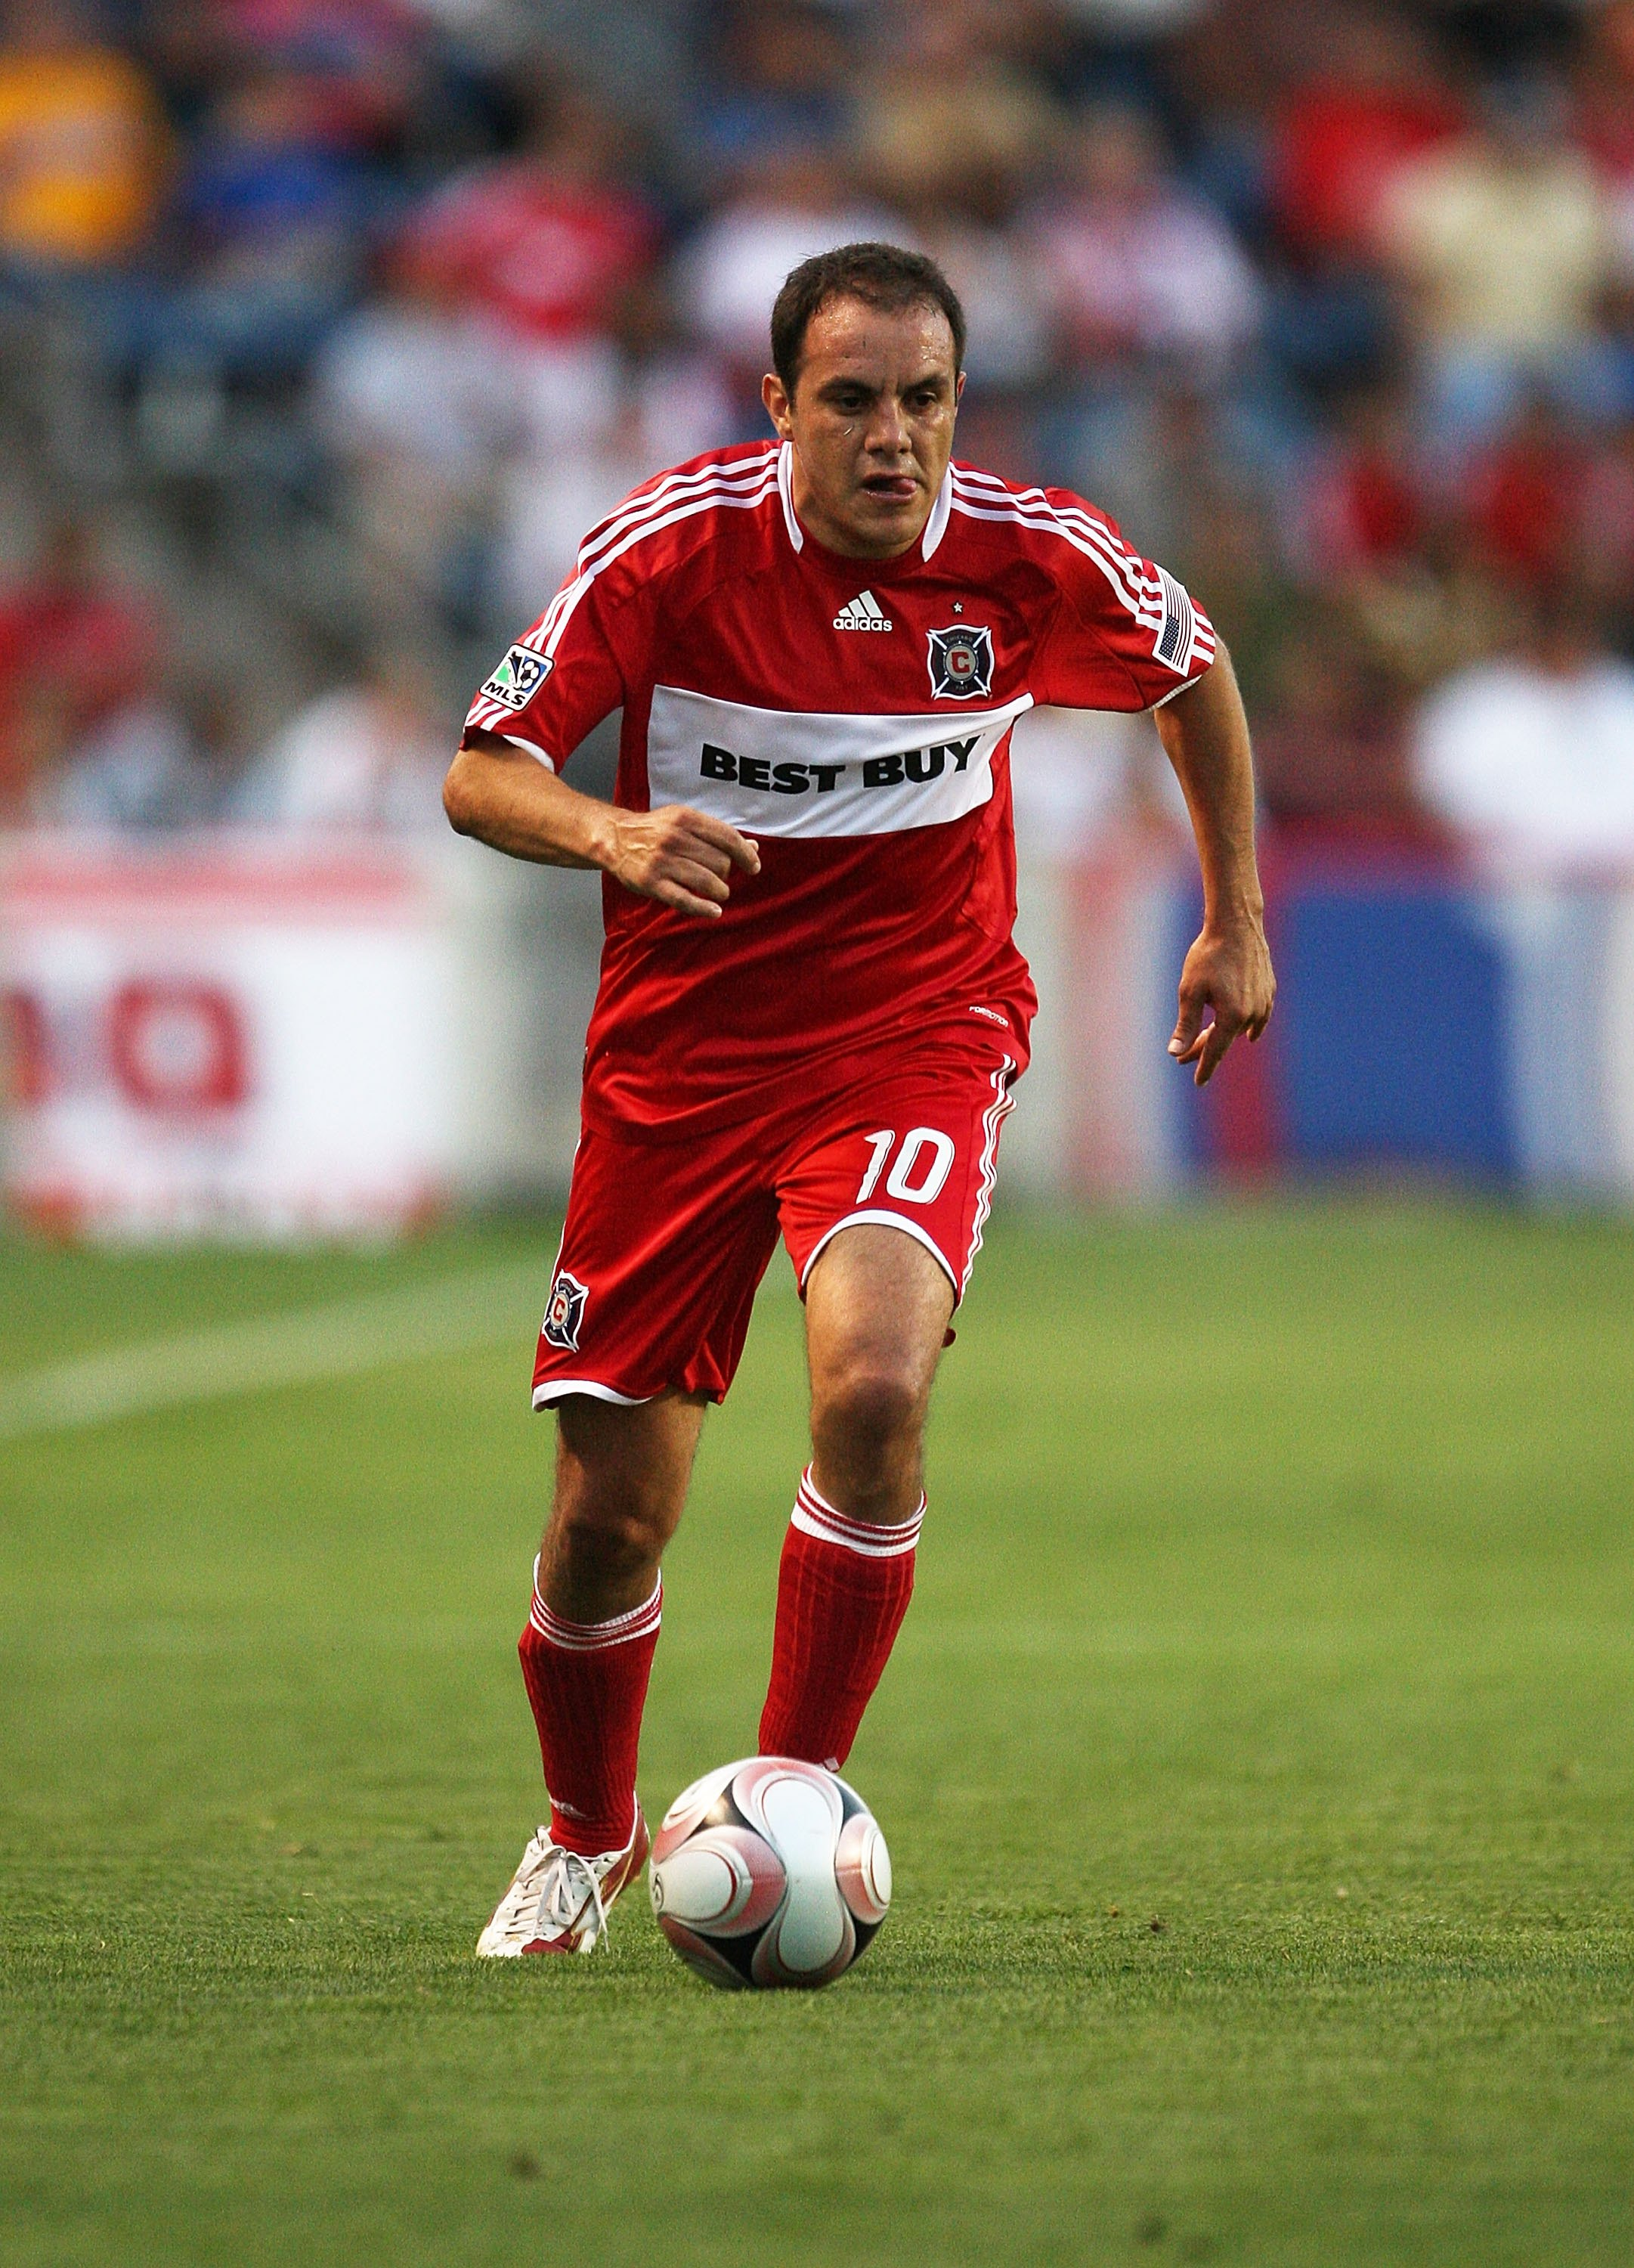 BRIDGEVIEW, IL - AUGUST 05: Cuauhtemoc Blanco #10 of the Chicago Fire controls the ball against Tigres UANL during the SuperLiga 2009 Final on August 5, 2009 at Toyota Park in Bridgeview, Illinois. Tigres UANL defeated the Fire 1-1 (4-3) in a shoot out.